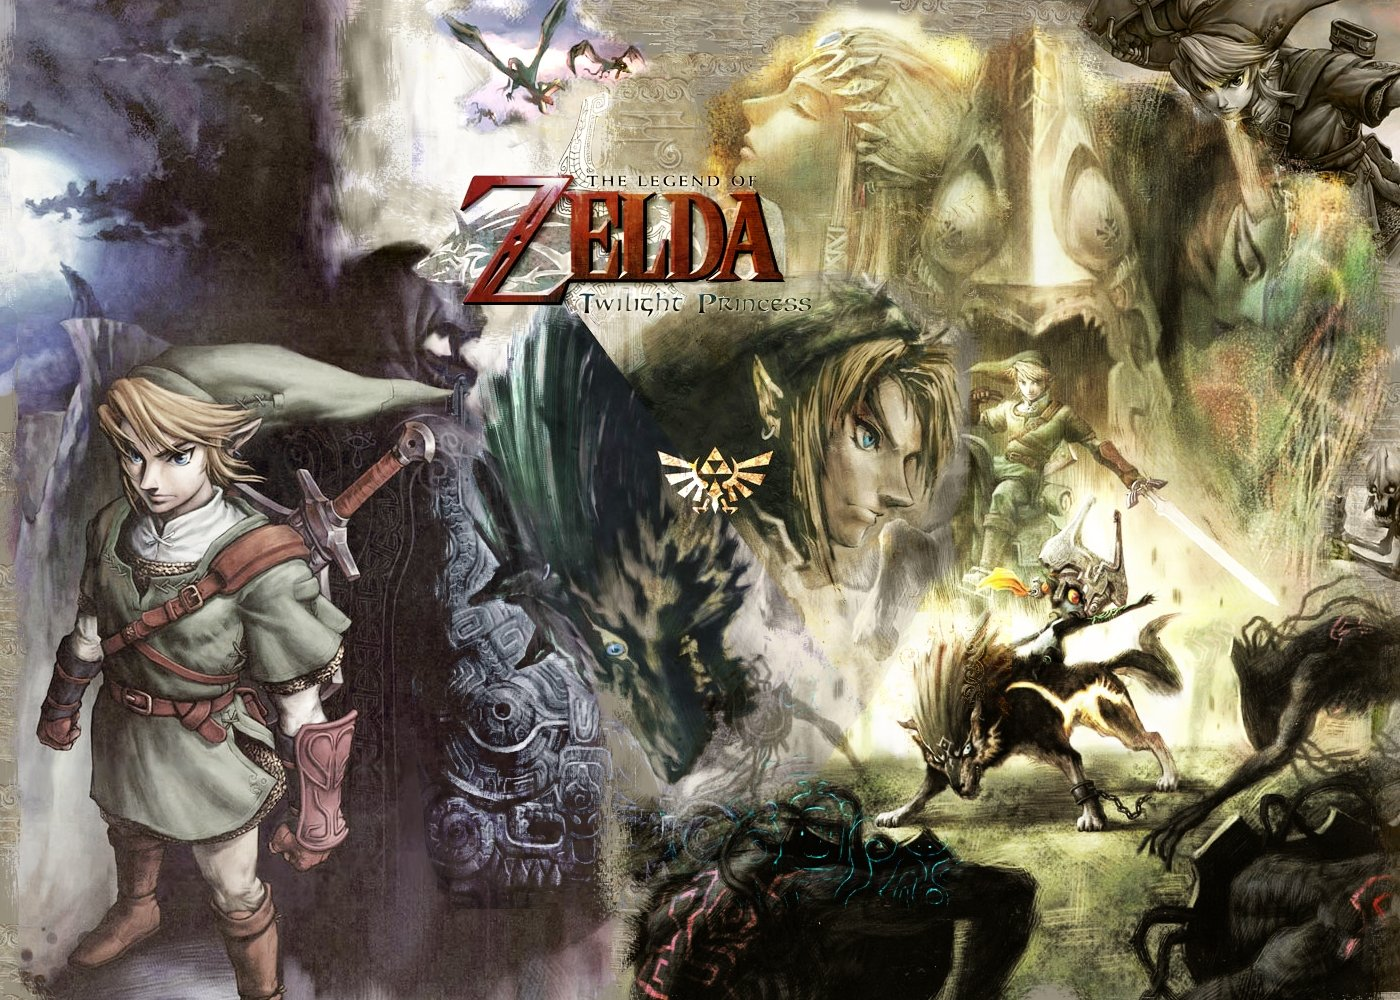 Legend Of Zelda Twilight Princess Wallpaper - WallpaperSafari